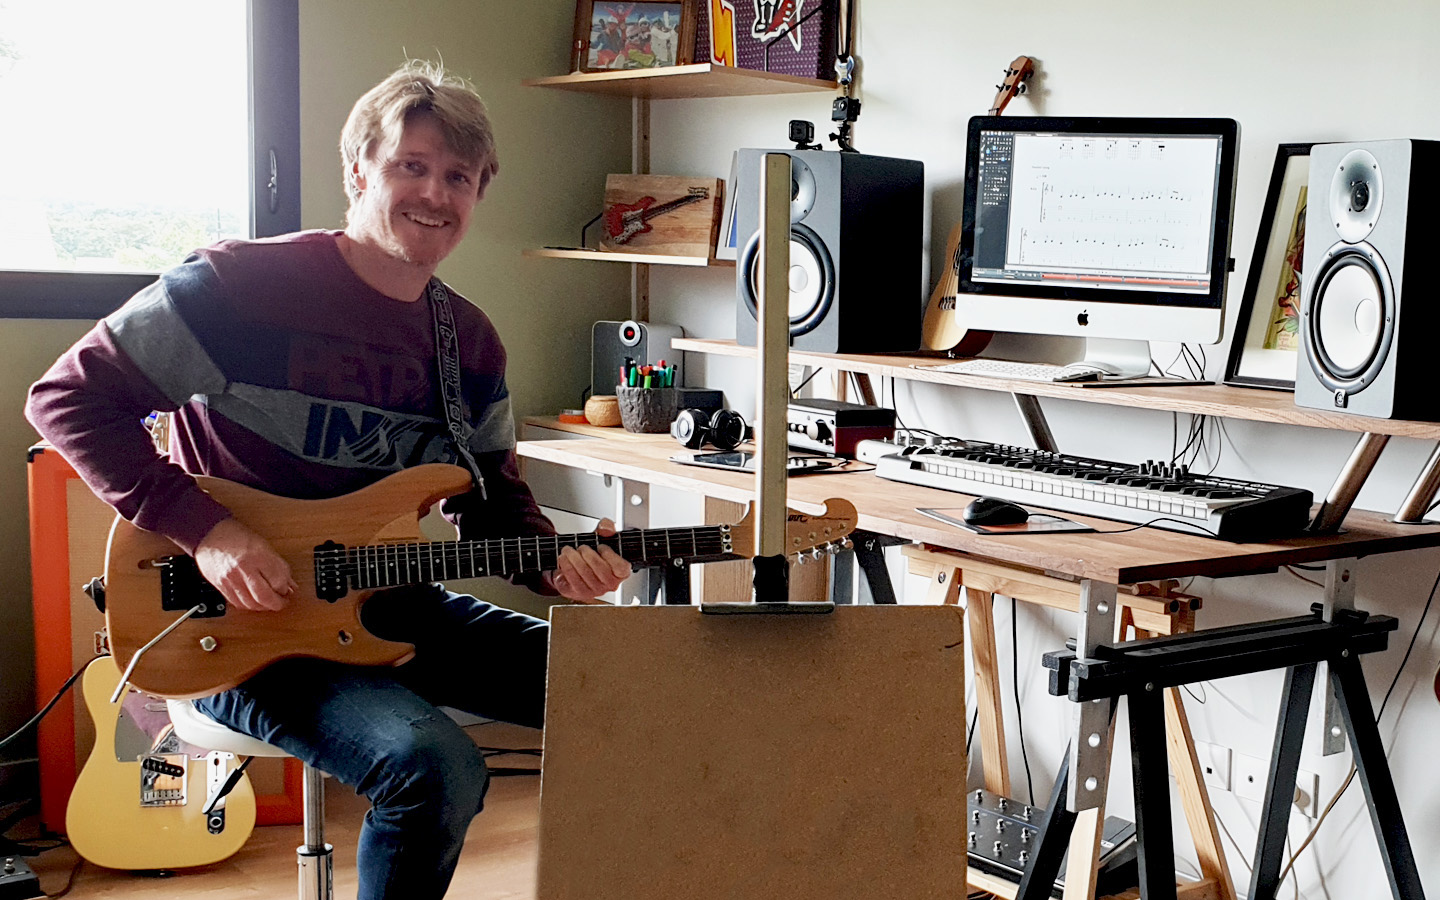 David Boet Professeur de Guitare